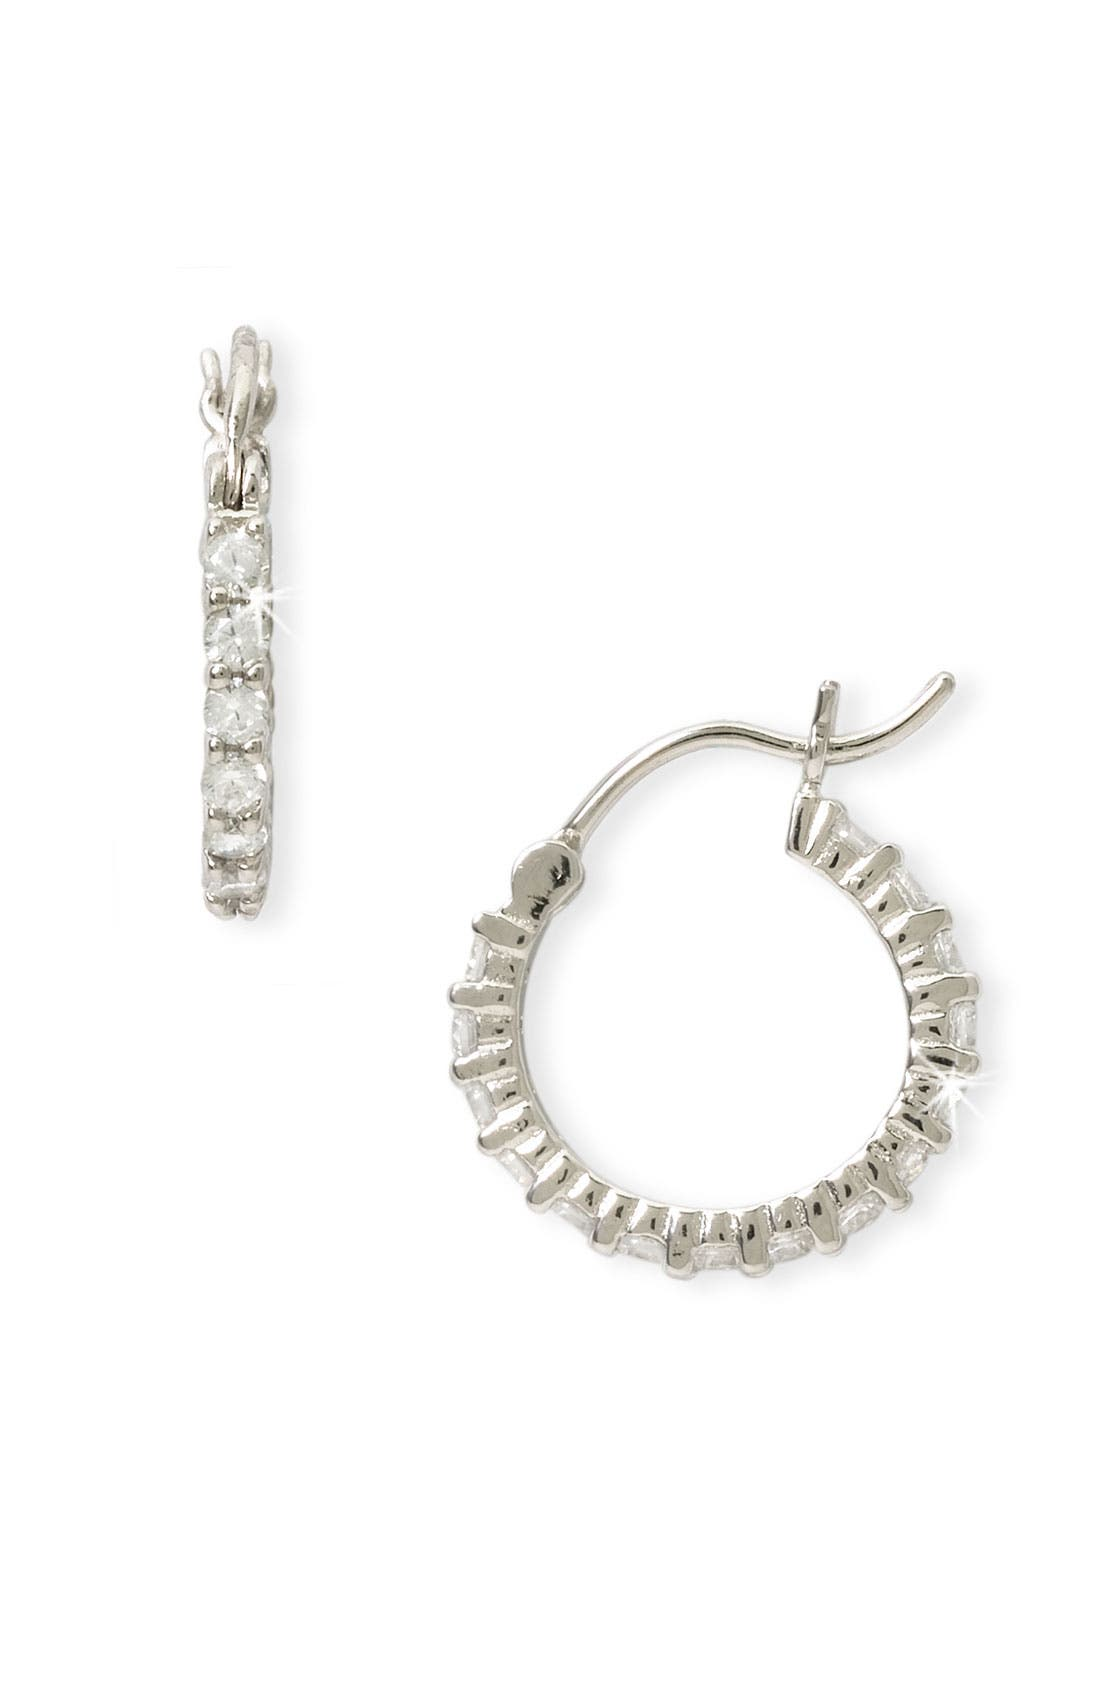 Main Image - Nordstrom Cubic Zirconia Thin Hoop Earrings